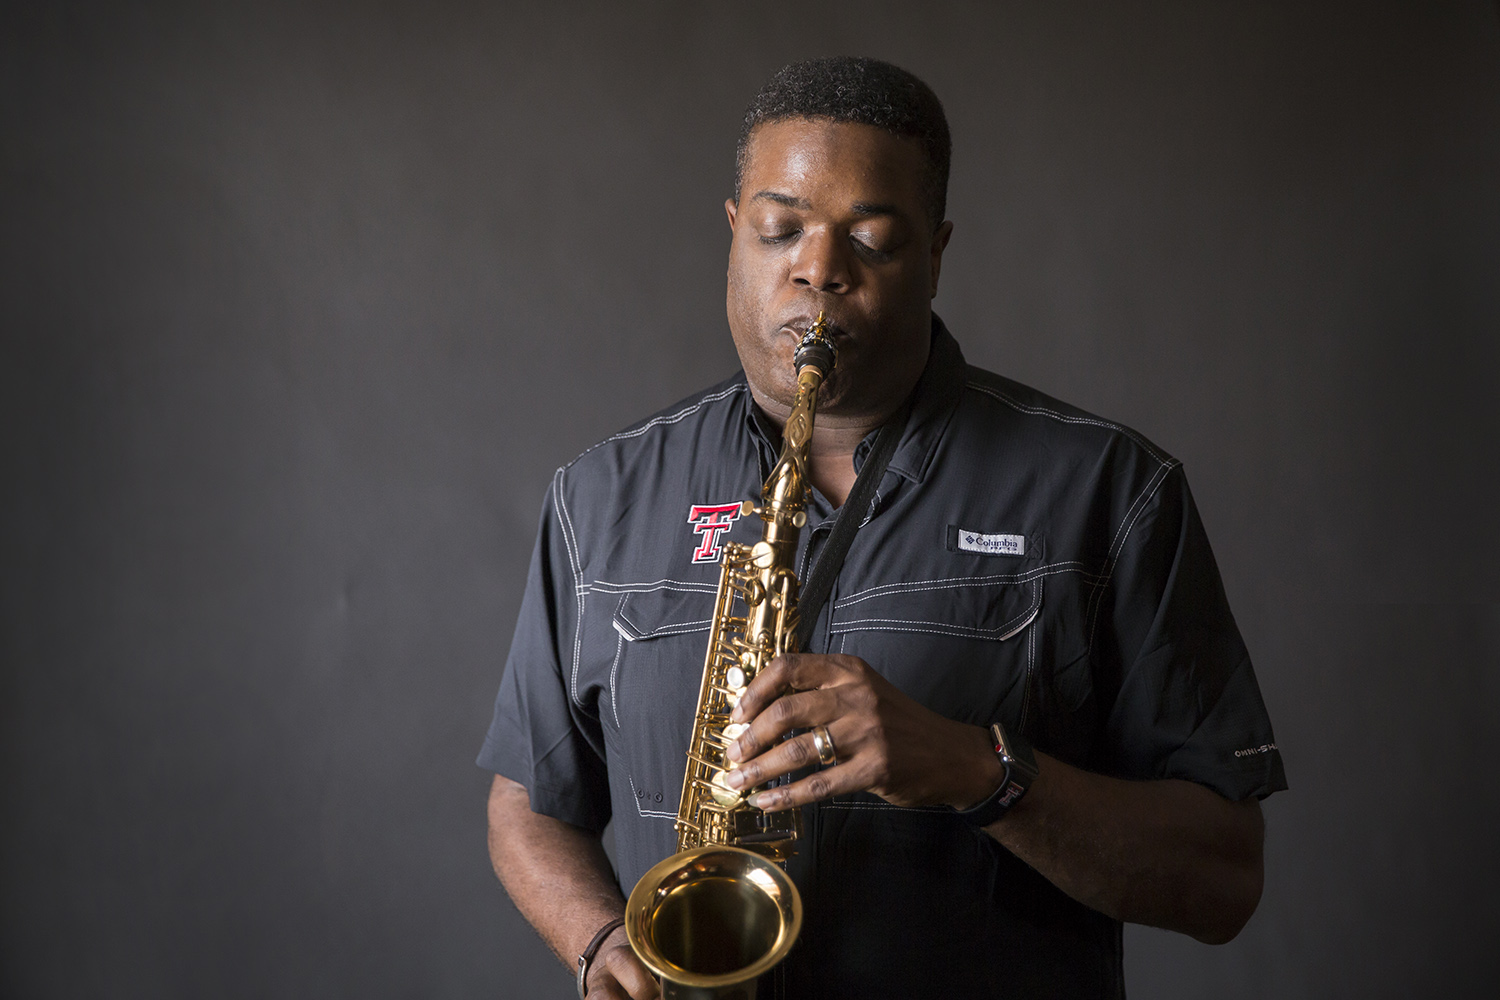 Armed With A Saxophone, Alumnus Aims To Share His Passion With America